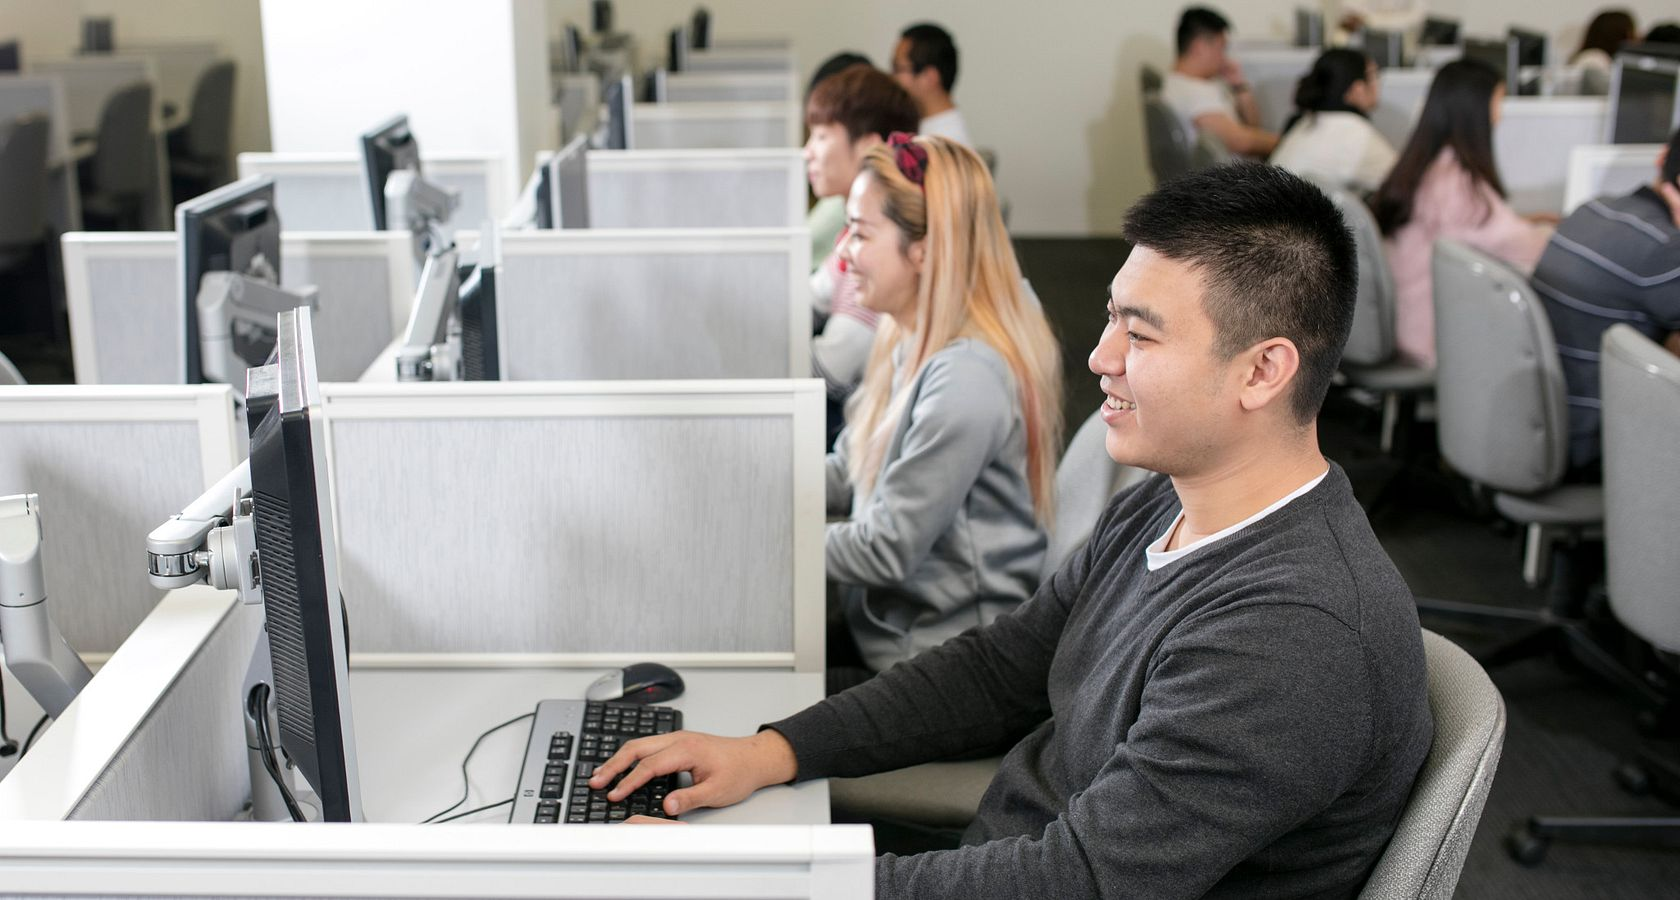 picture of a group of people taking the computer-delivered IELTS test